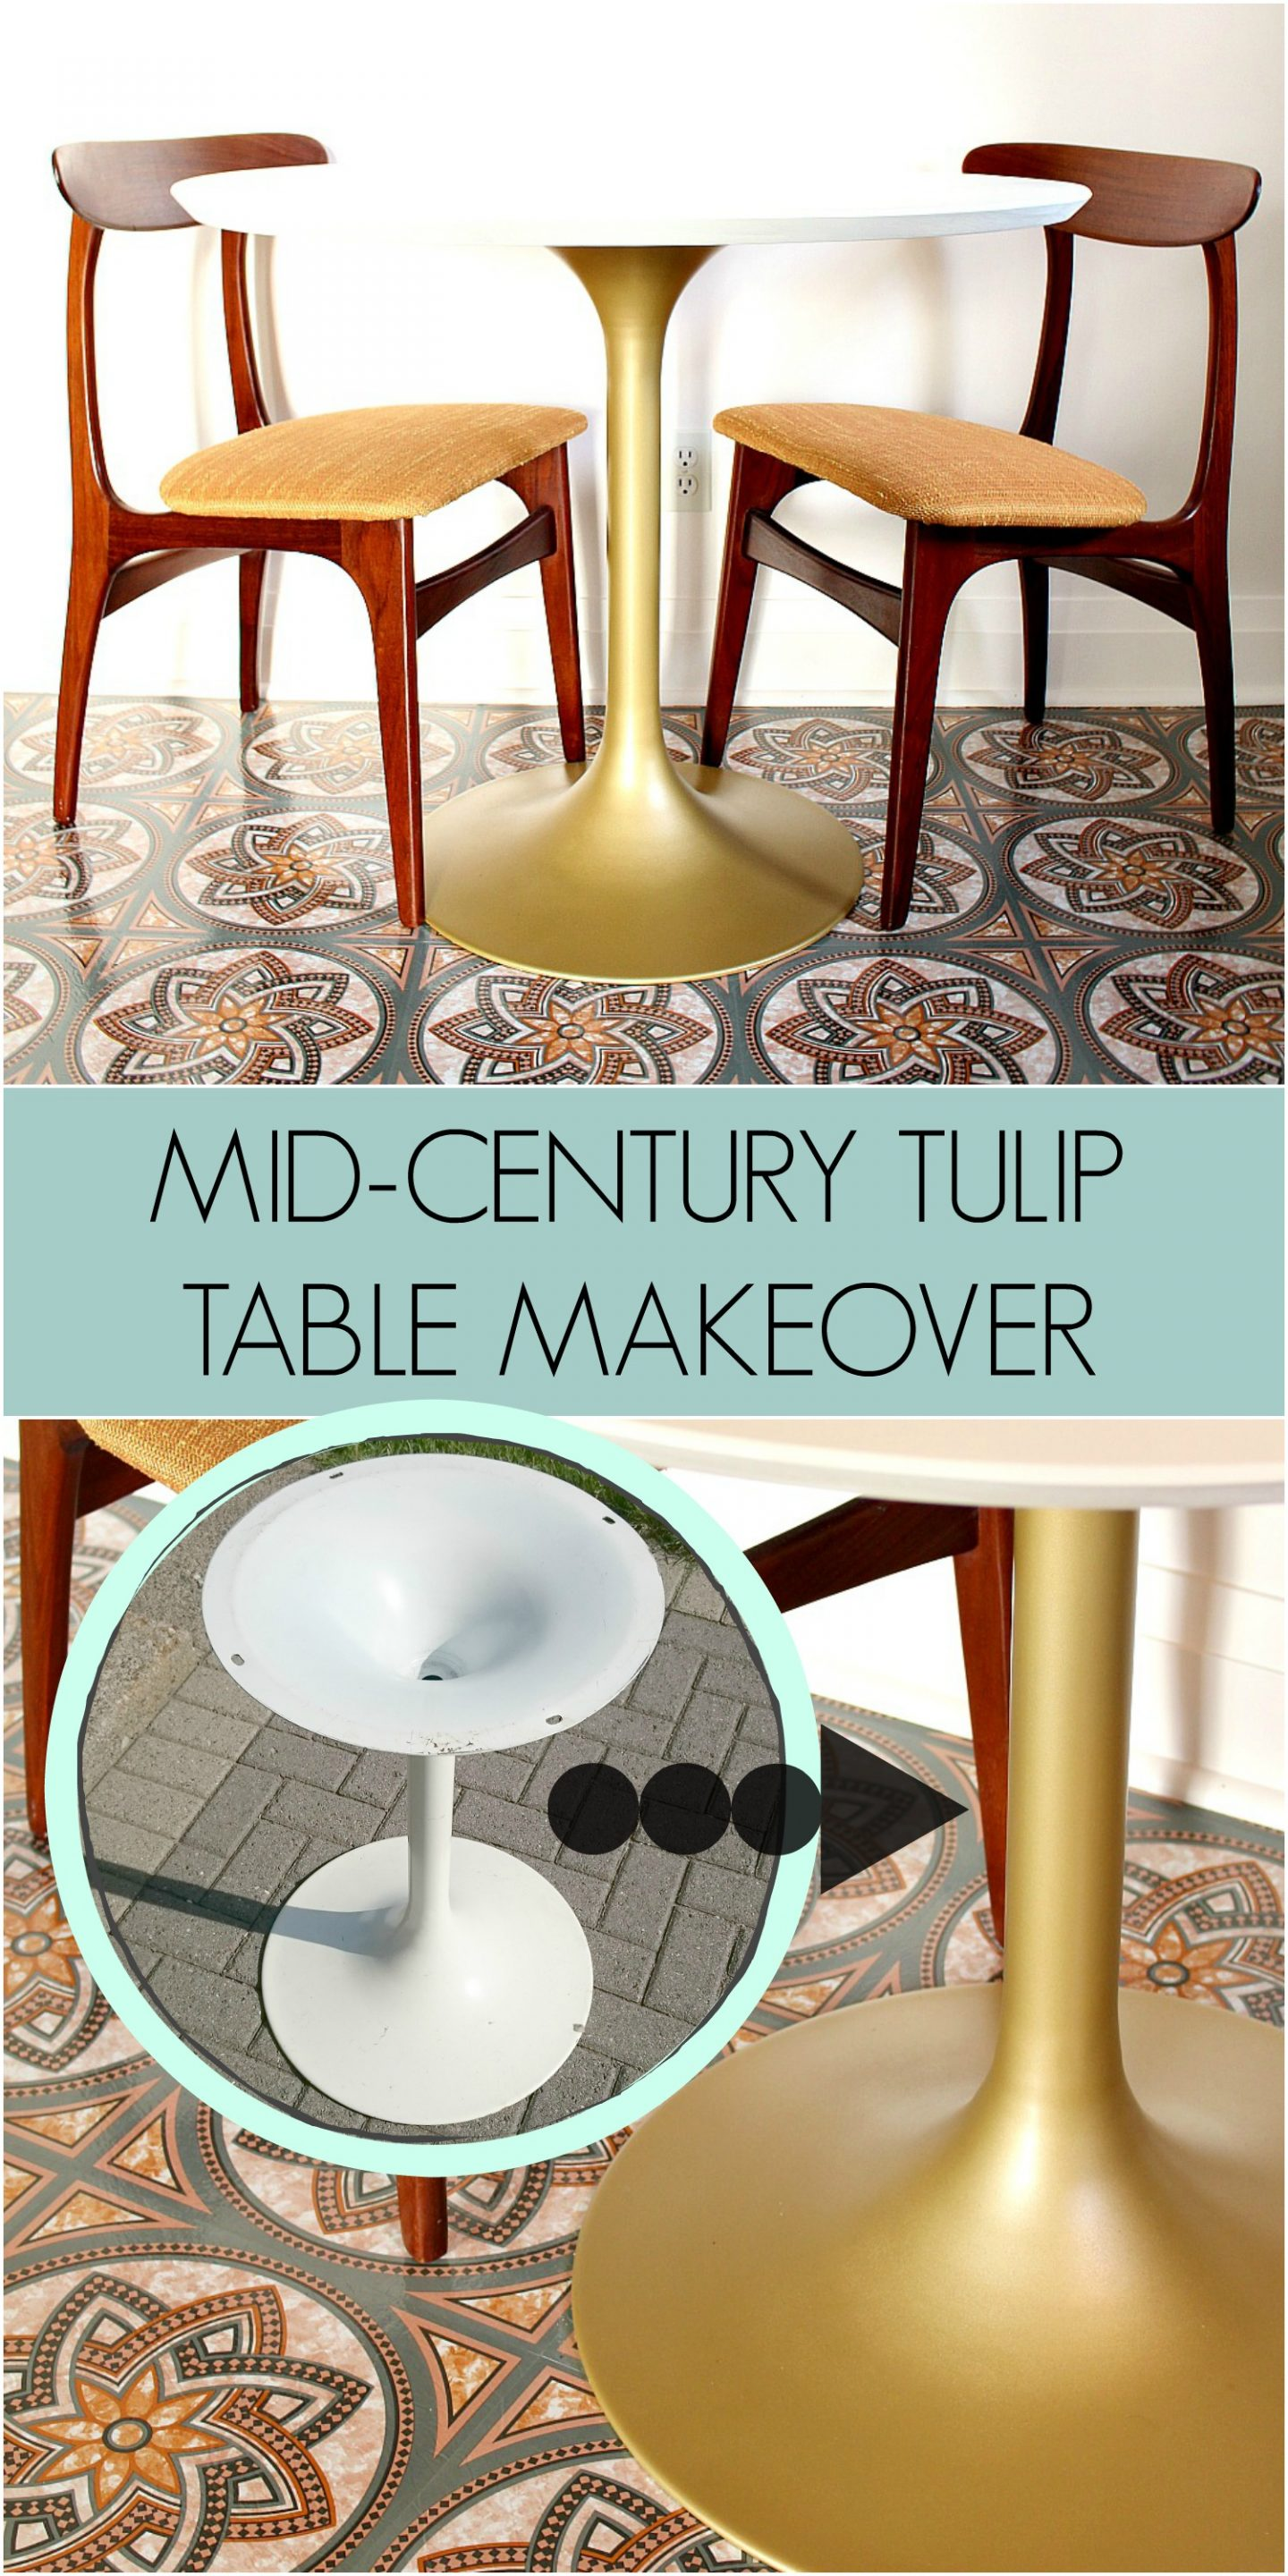 Mid-Century Tulip Table Makeover | Dans le Lakehouse